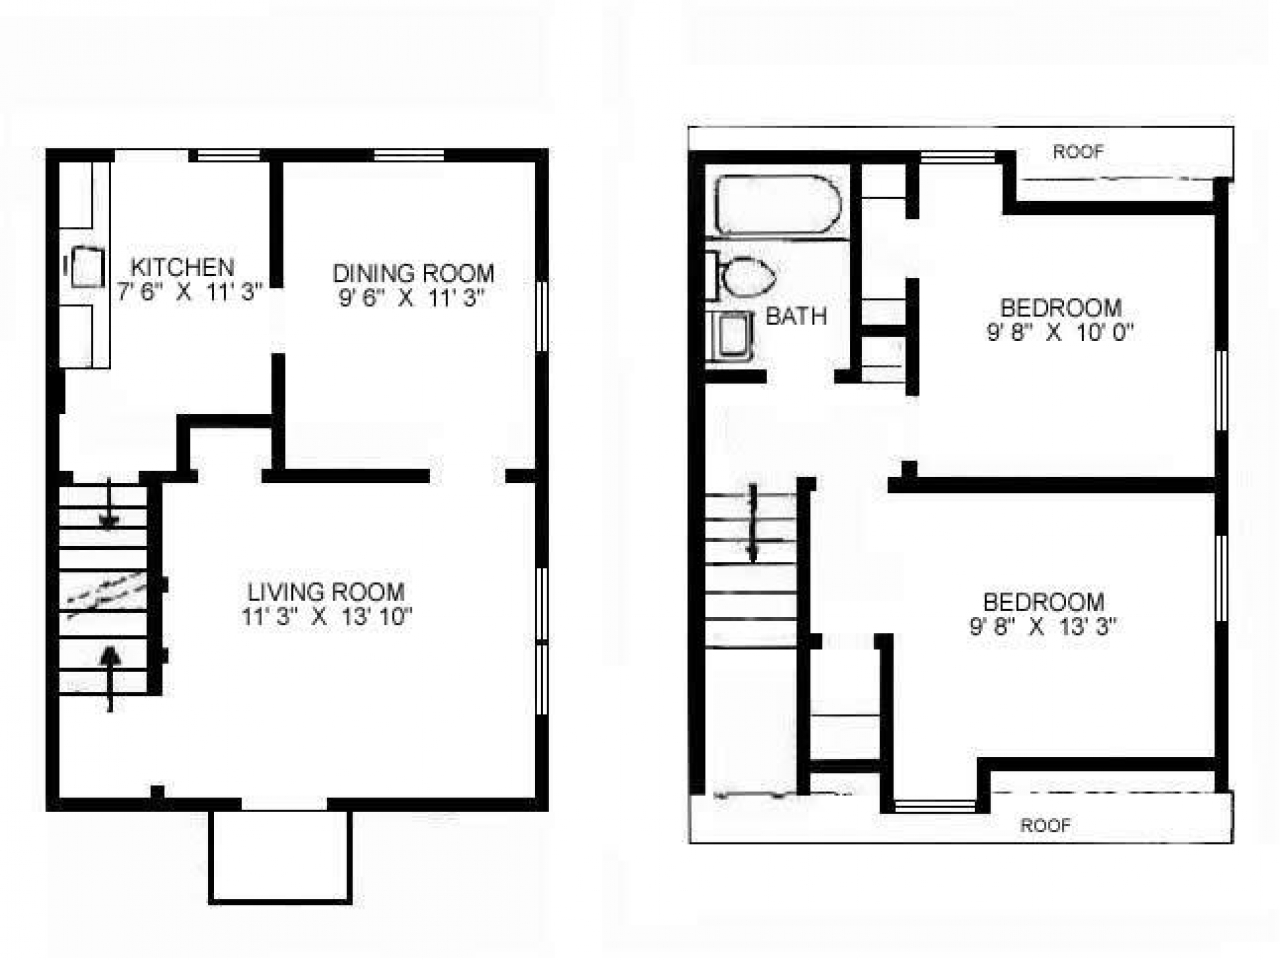 Narrow duplex house plans small duplex floor plans small for 3 bedroom duplex plans